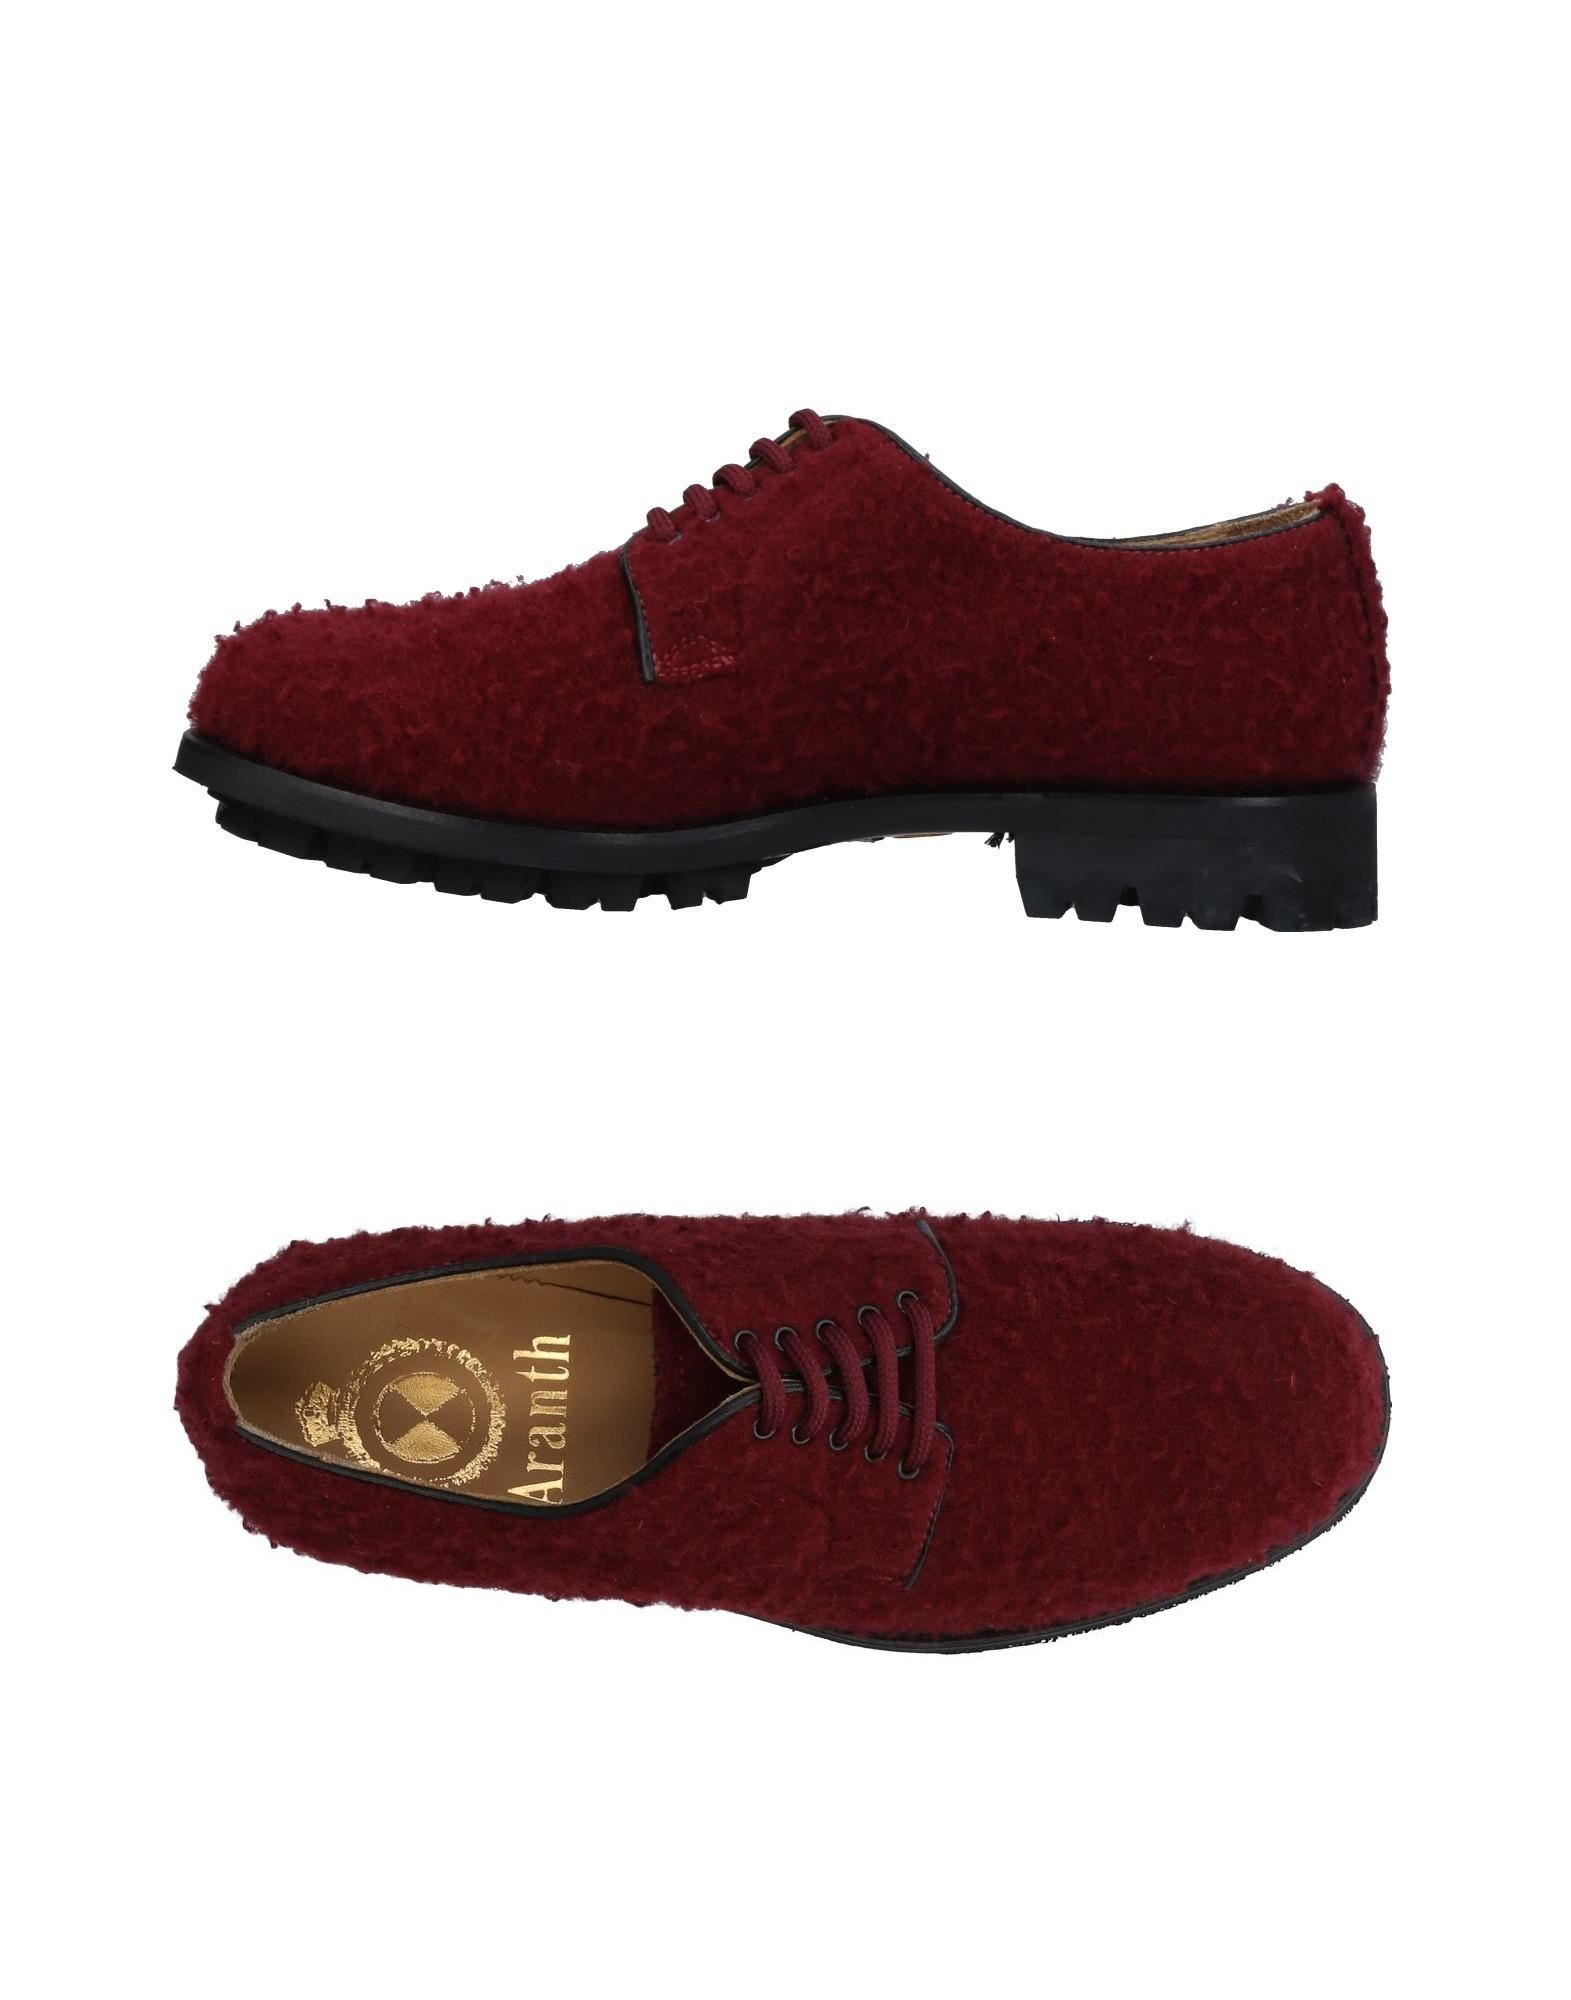 ARANTH Laced Shoes in Maroon